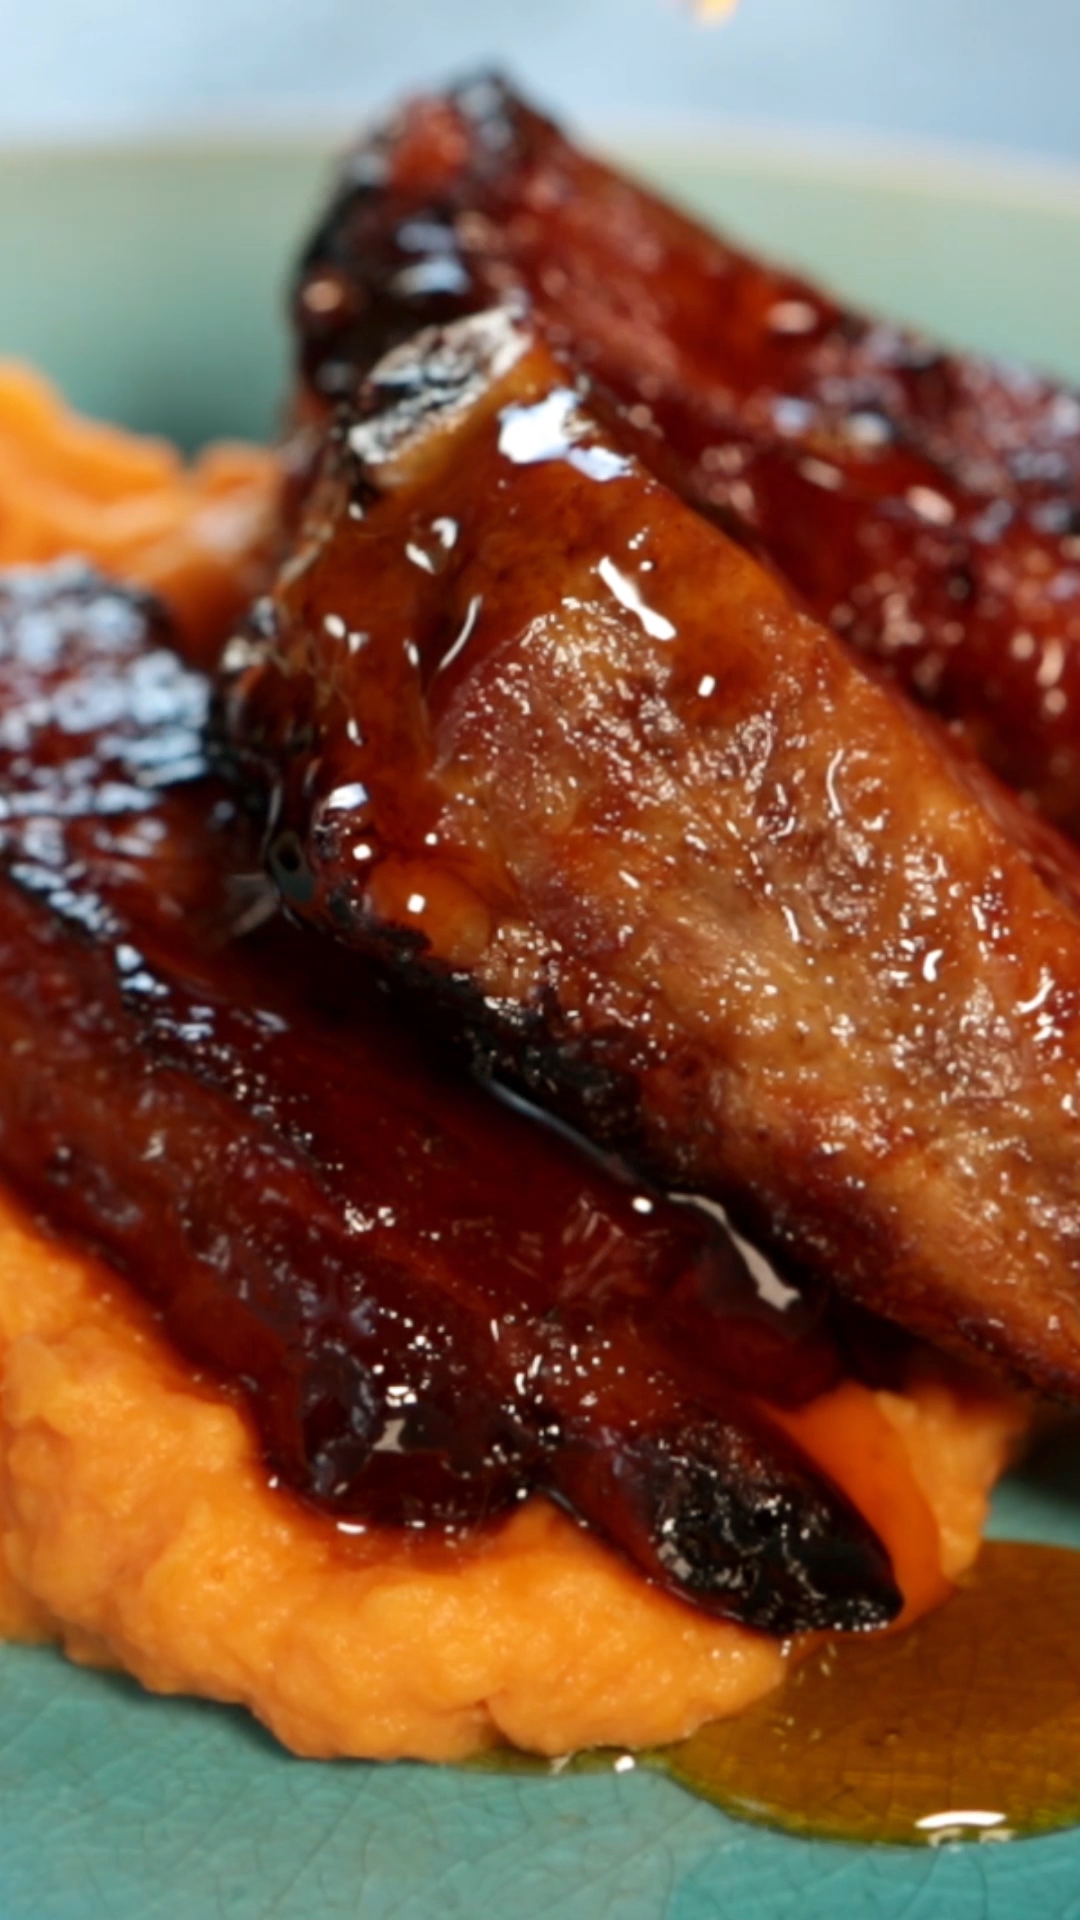 Pork ribs marinated in maple syrup with a side of mashed sweet potatoes